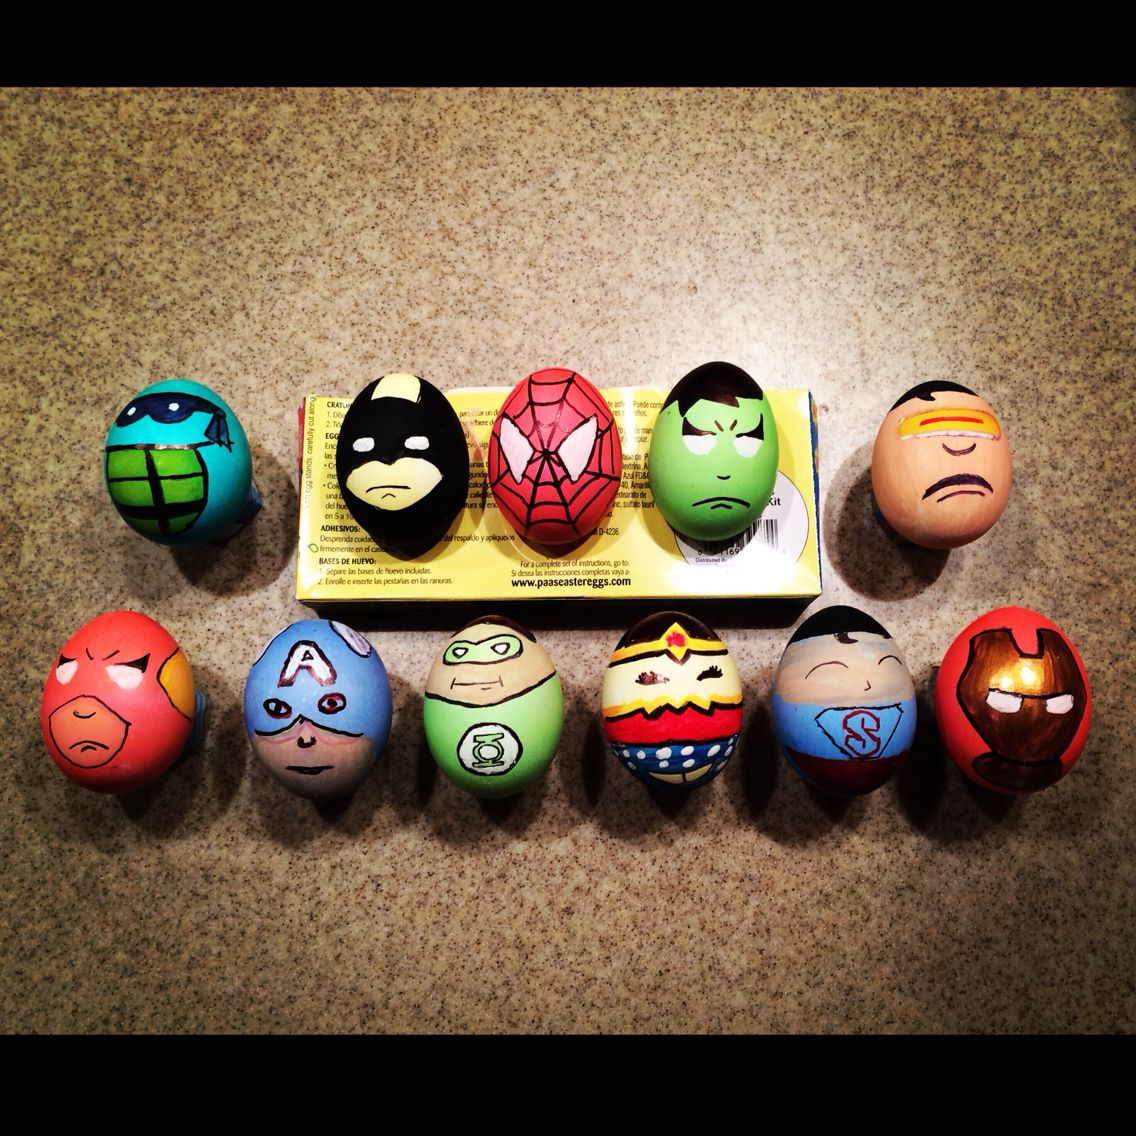 Superhero eggs (With images) | Easter egg crafts, Easter ...